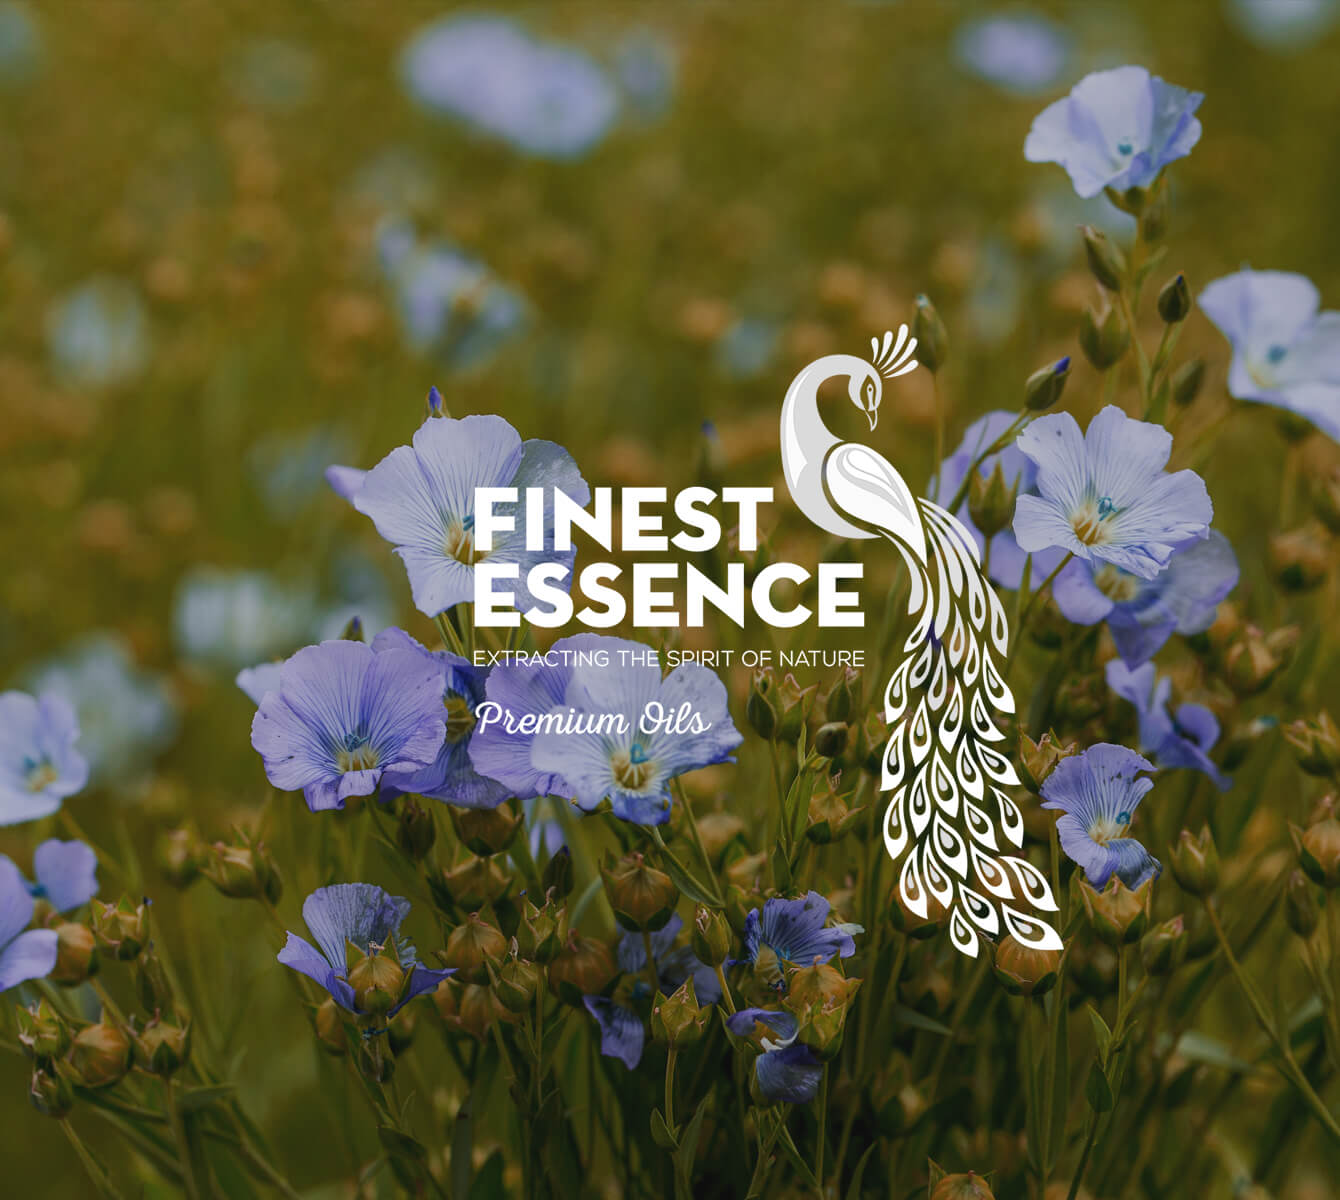 FINNEST ESSENCE – Spark of Life Inside